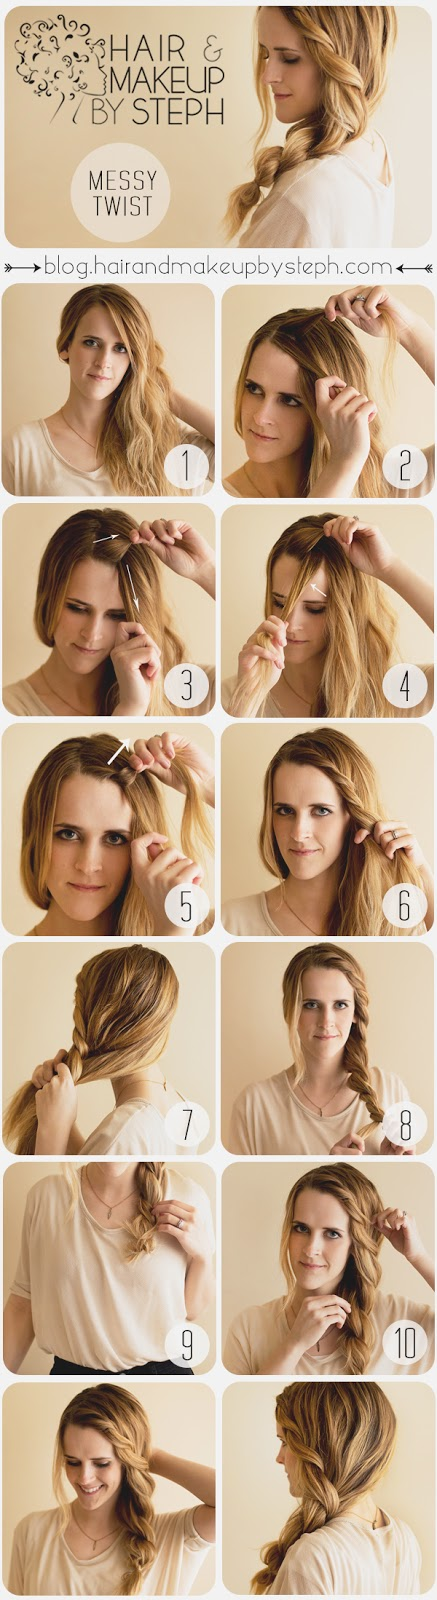 20 Cute and Easy Hairstyle Ideas and Tutorials (8)